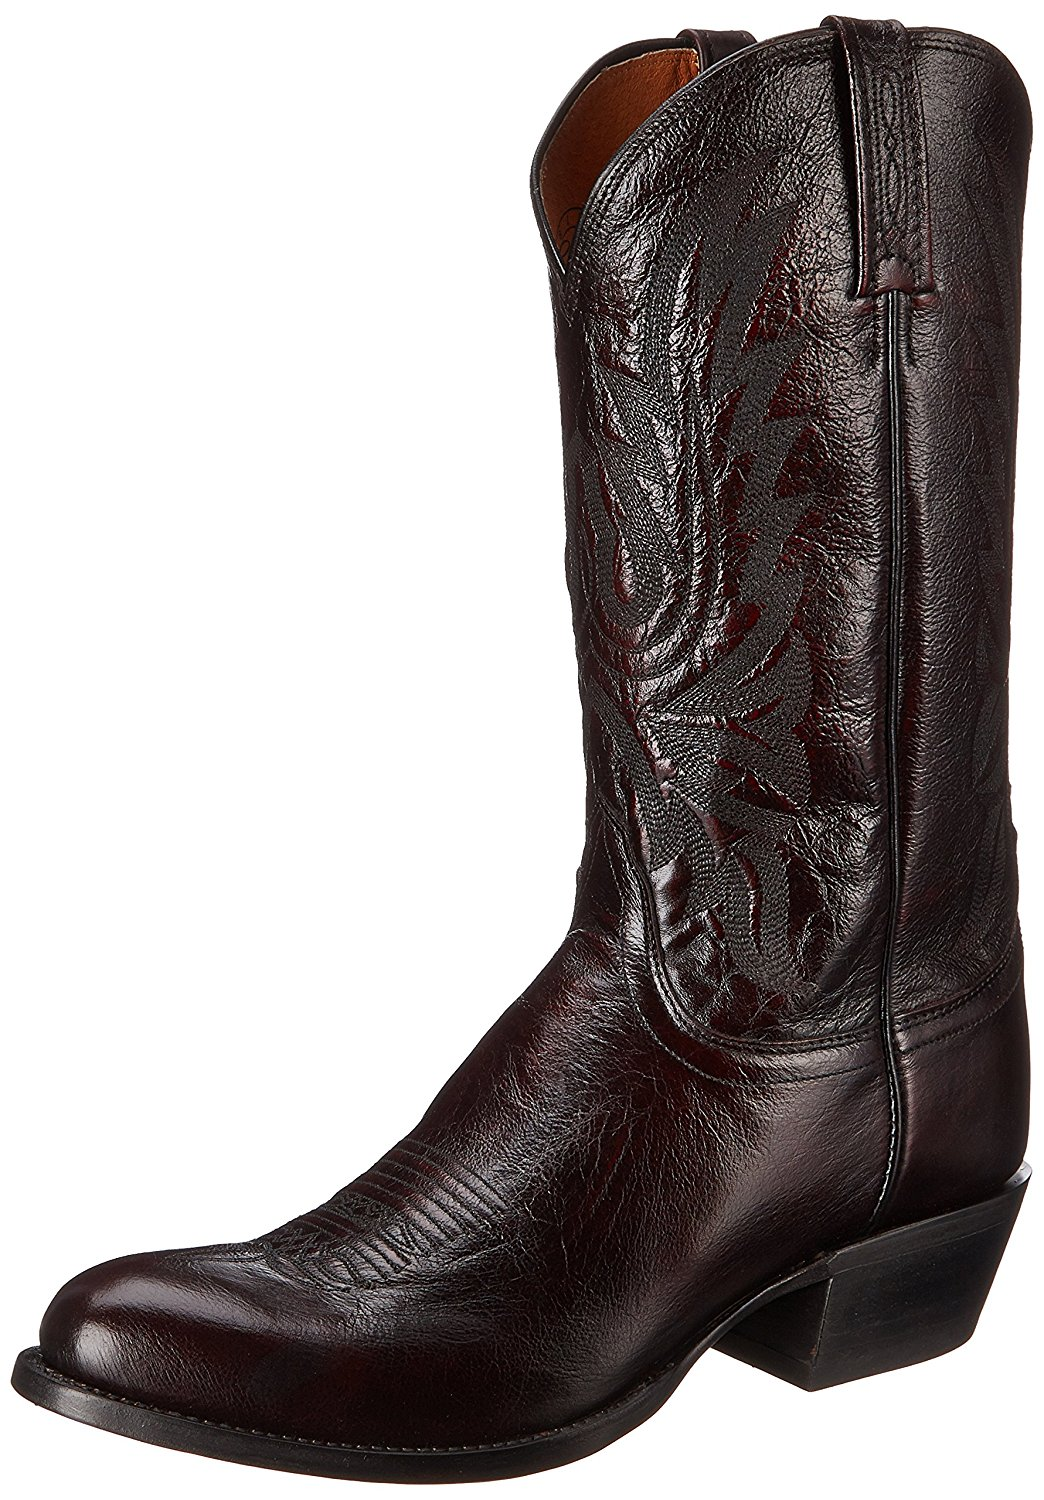 Lucchese Bootmaker Men's Carson-bc Lonestar Calf Cowboy Riding Boot